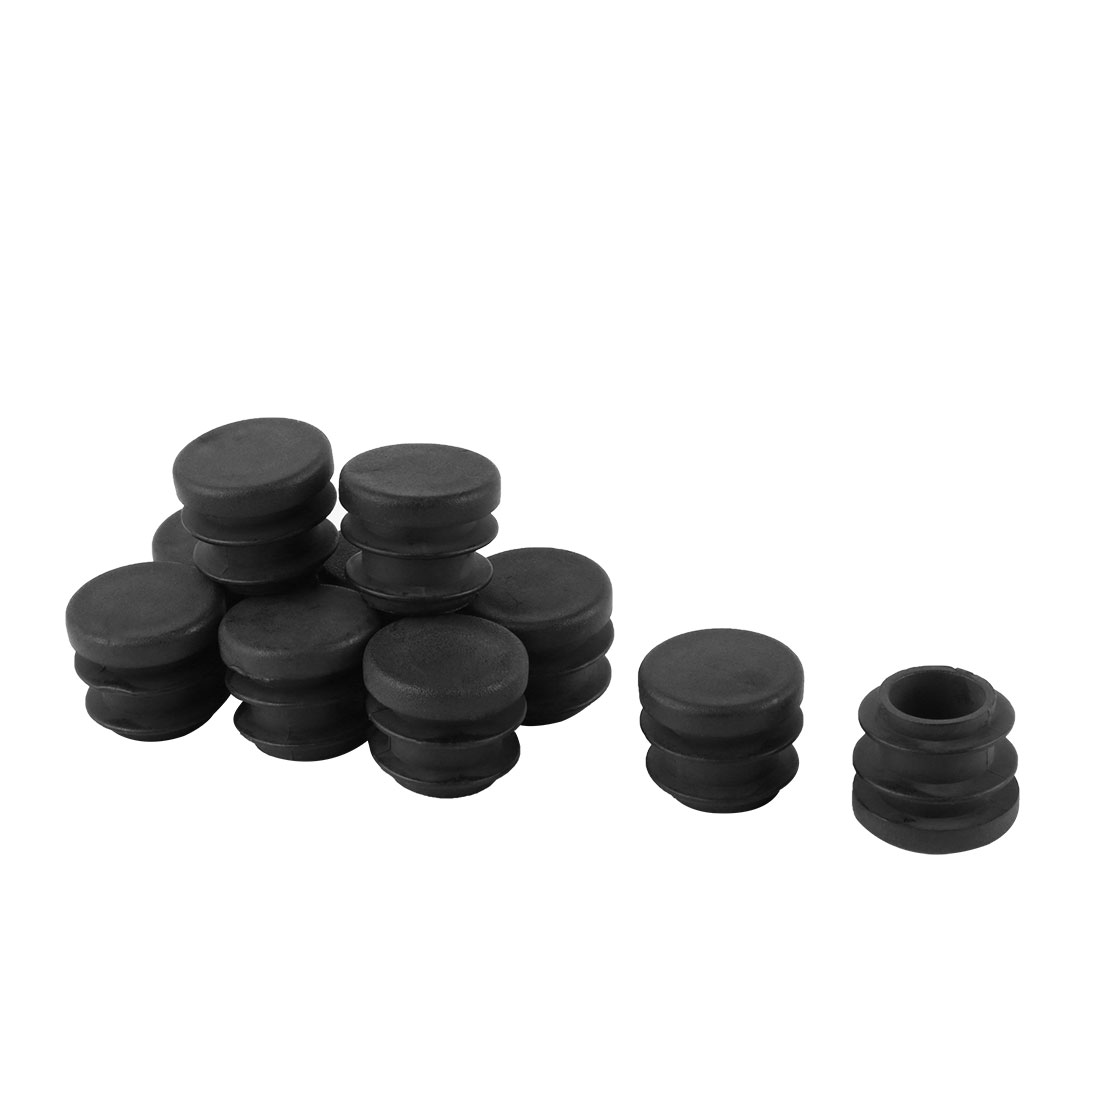 10 Pcs Black 16mm Diameter Round Plastic Blanking End Cap Tubing Tube Insert